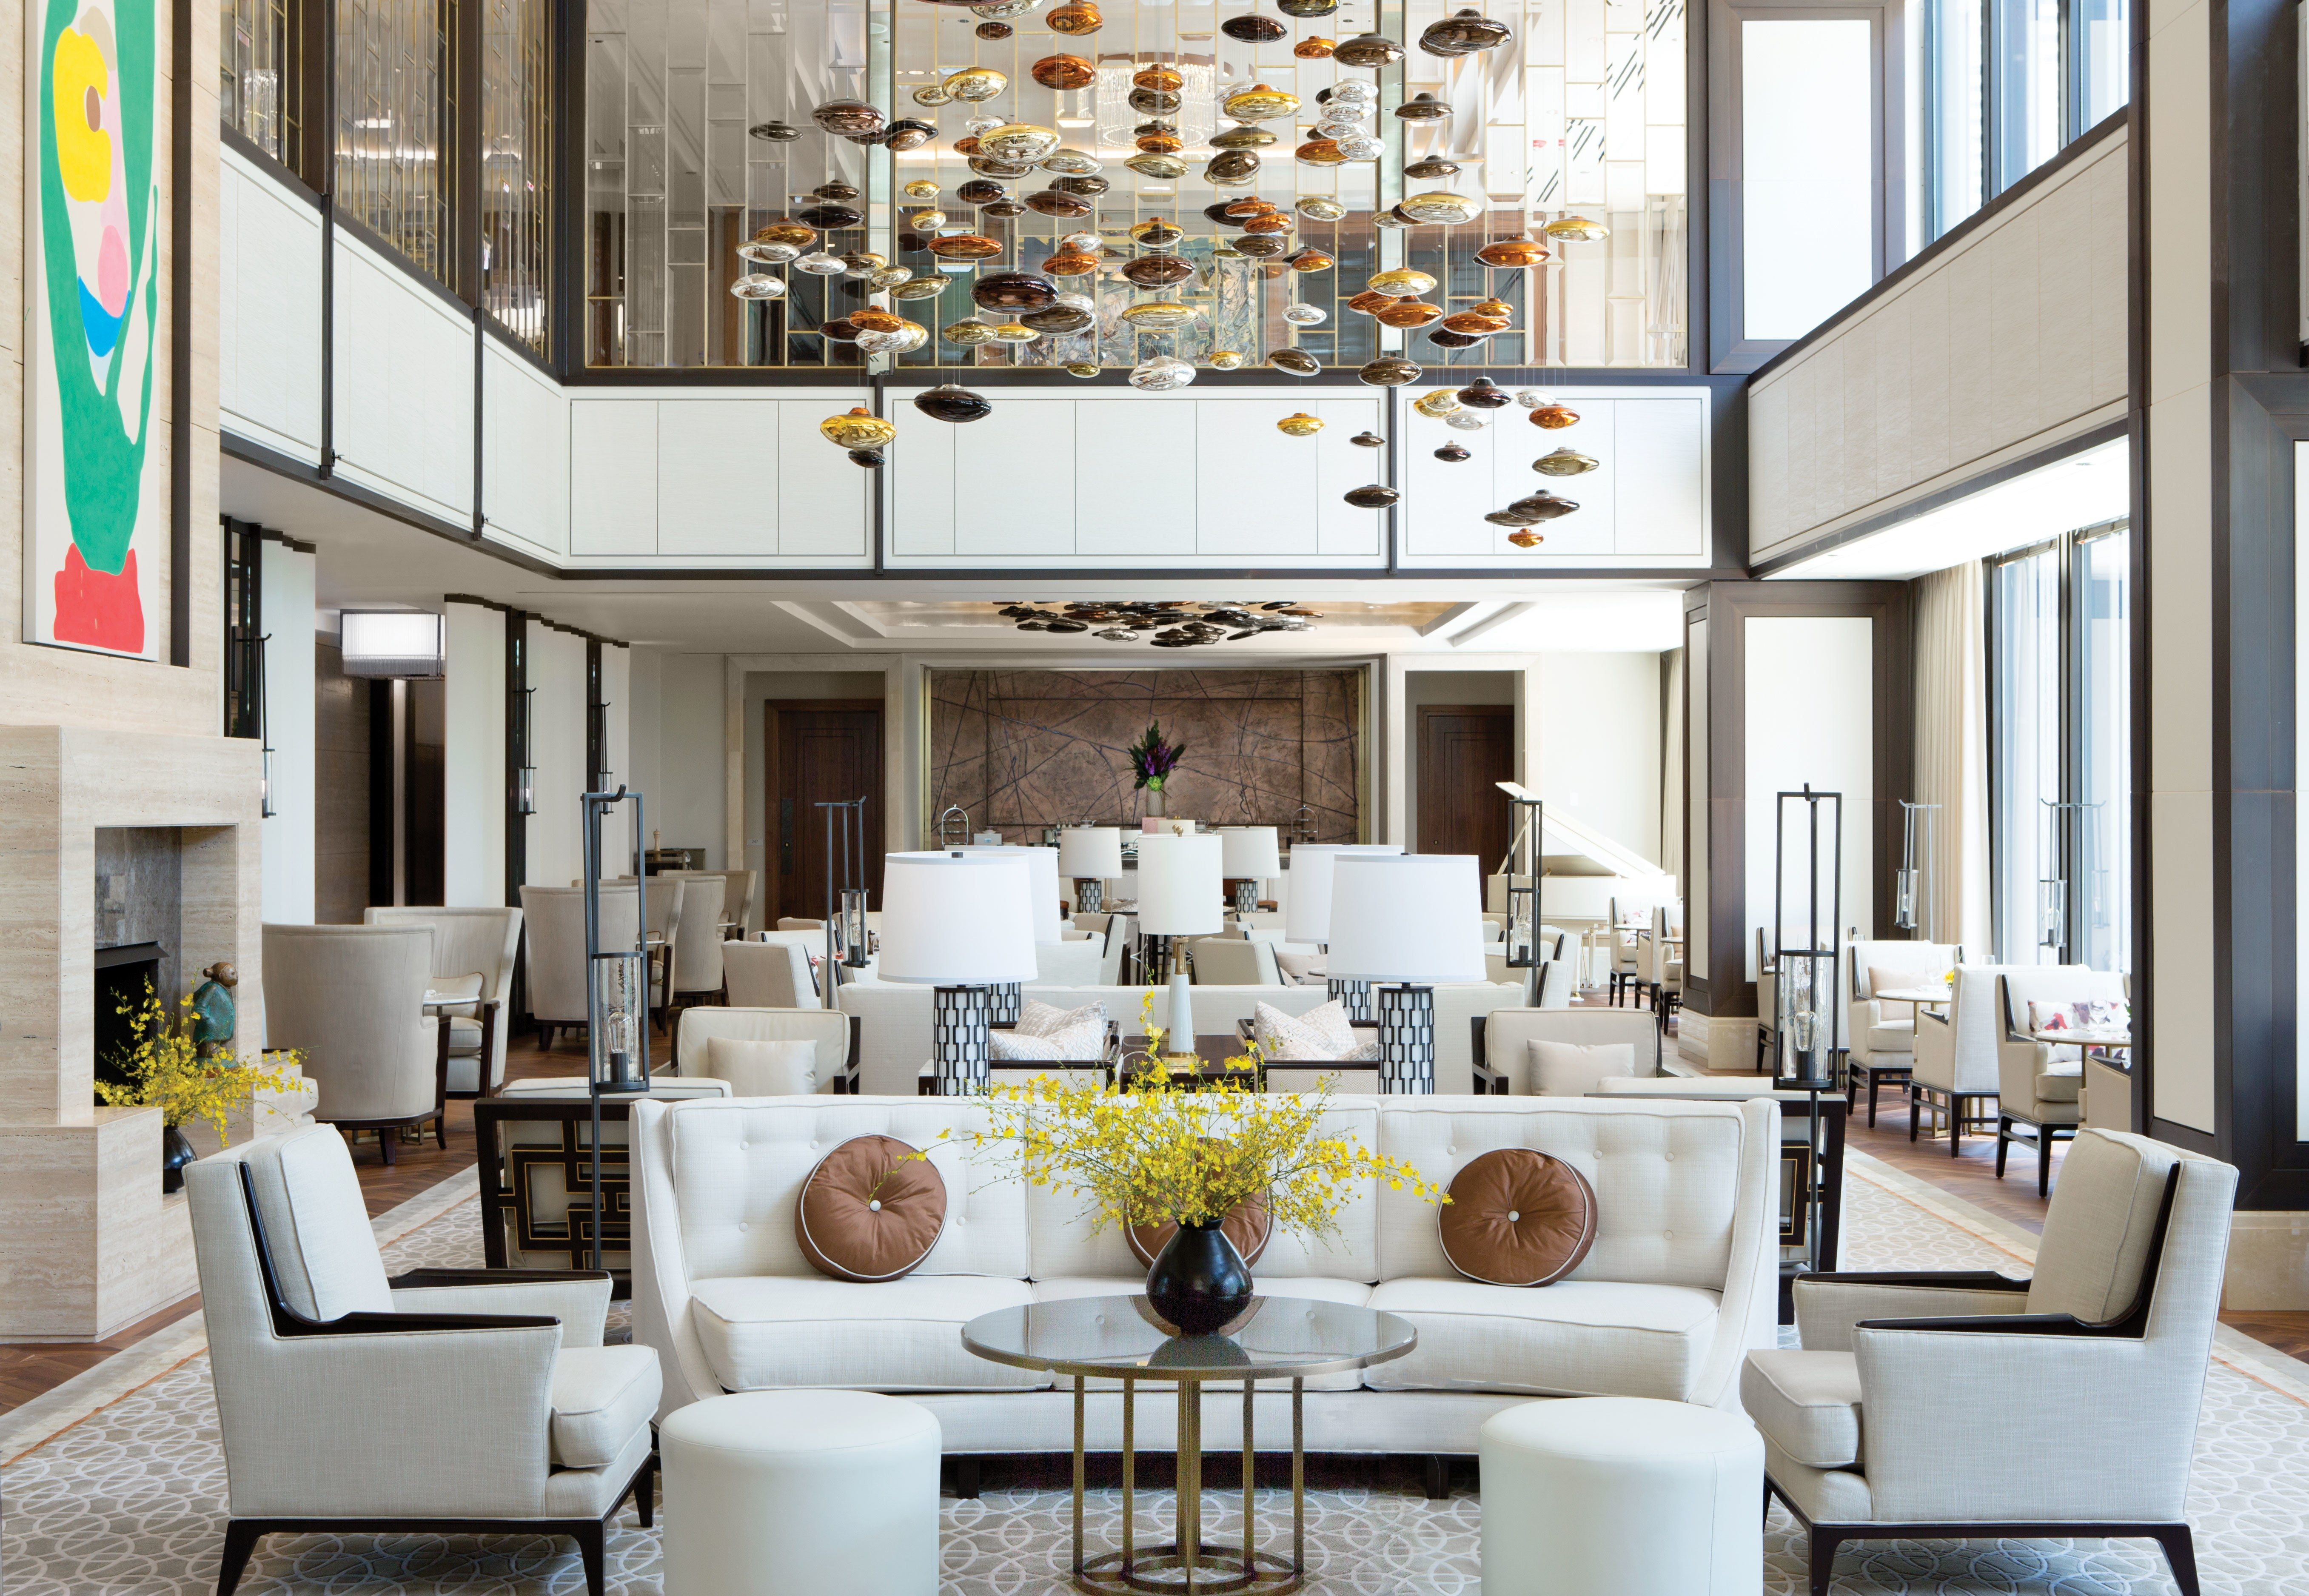 8 chicago hotels for the design savvy traveler chi town - Interior design firms chicago ...